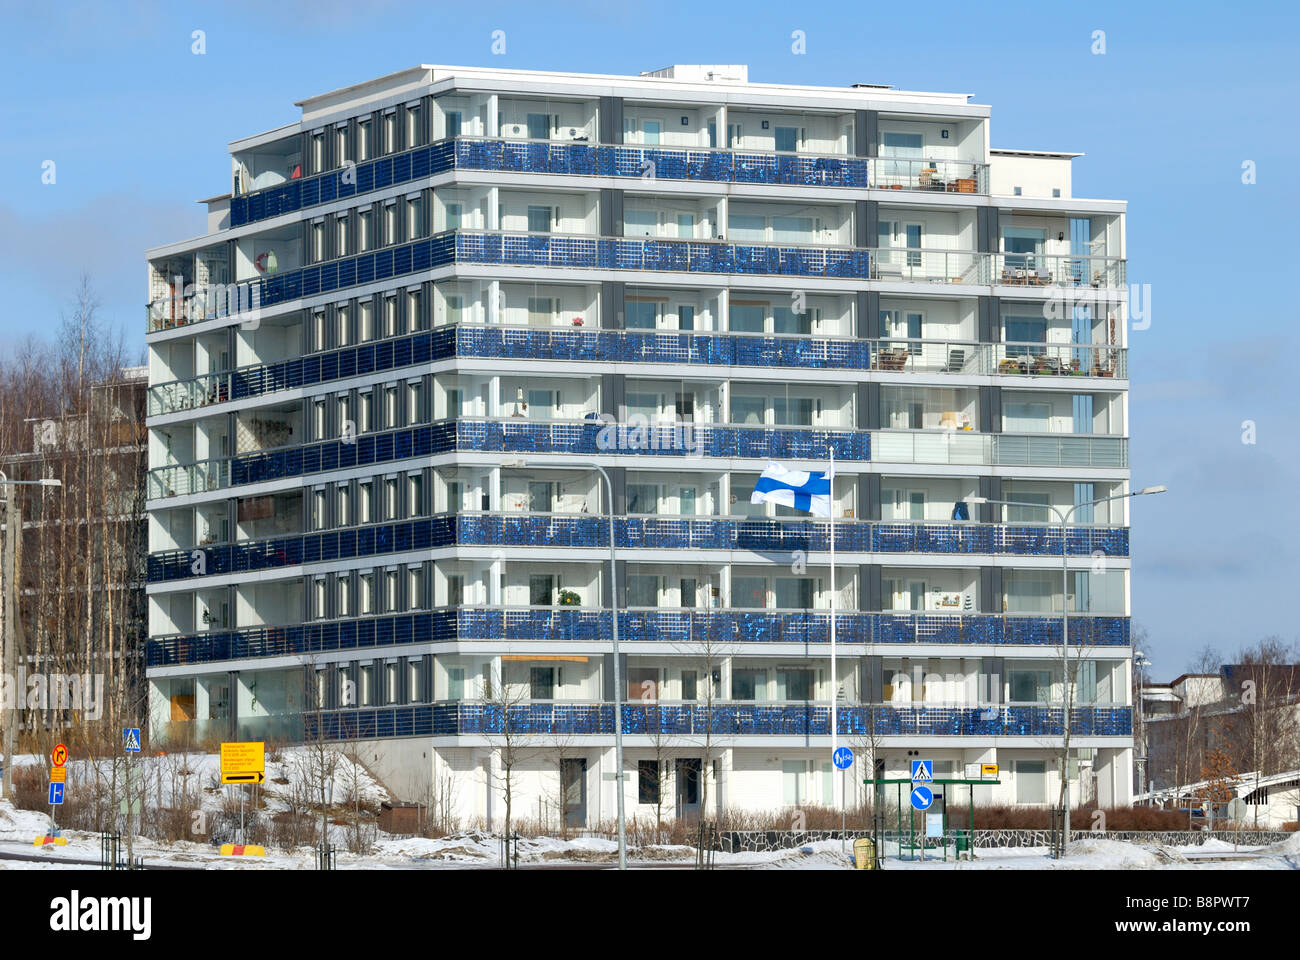 This eco apartment building have 240m2 of photovoltaic modules. The PV cells are integrated.., Helsinki, Finland, - Stock Image